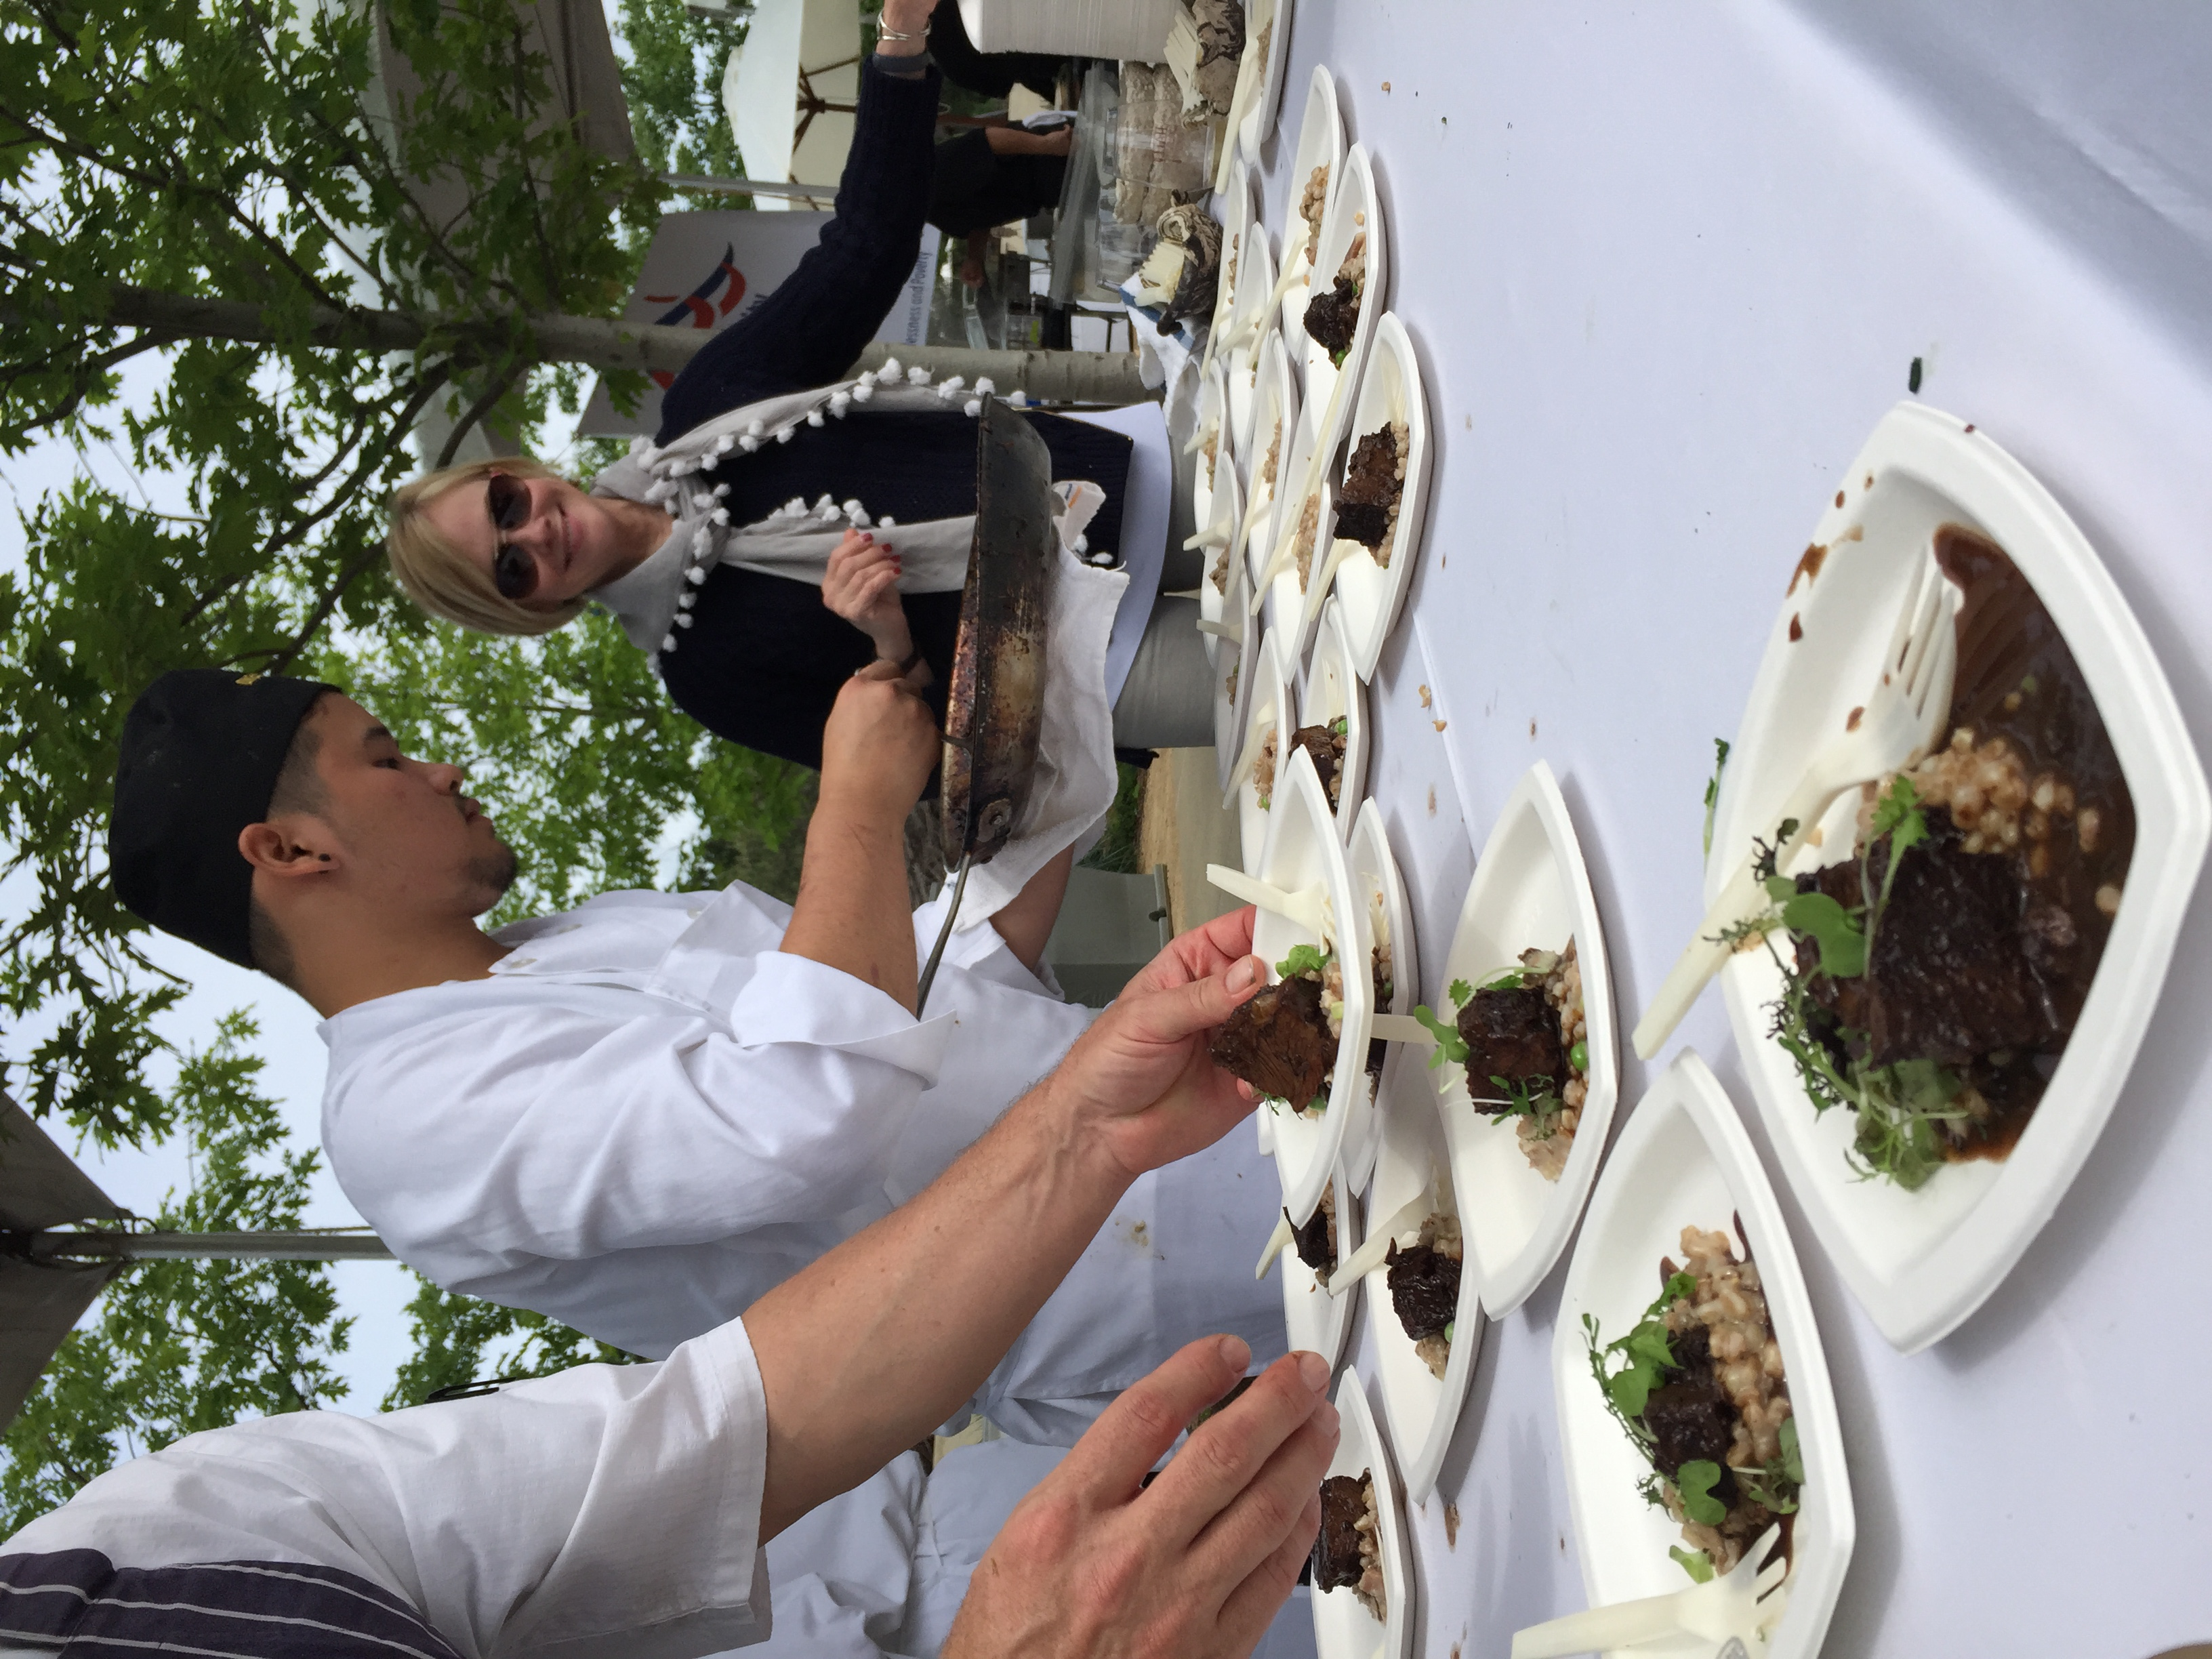 The chefs finishing the oxtail risotto.